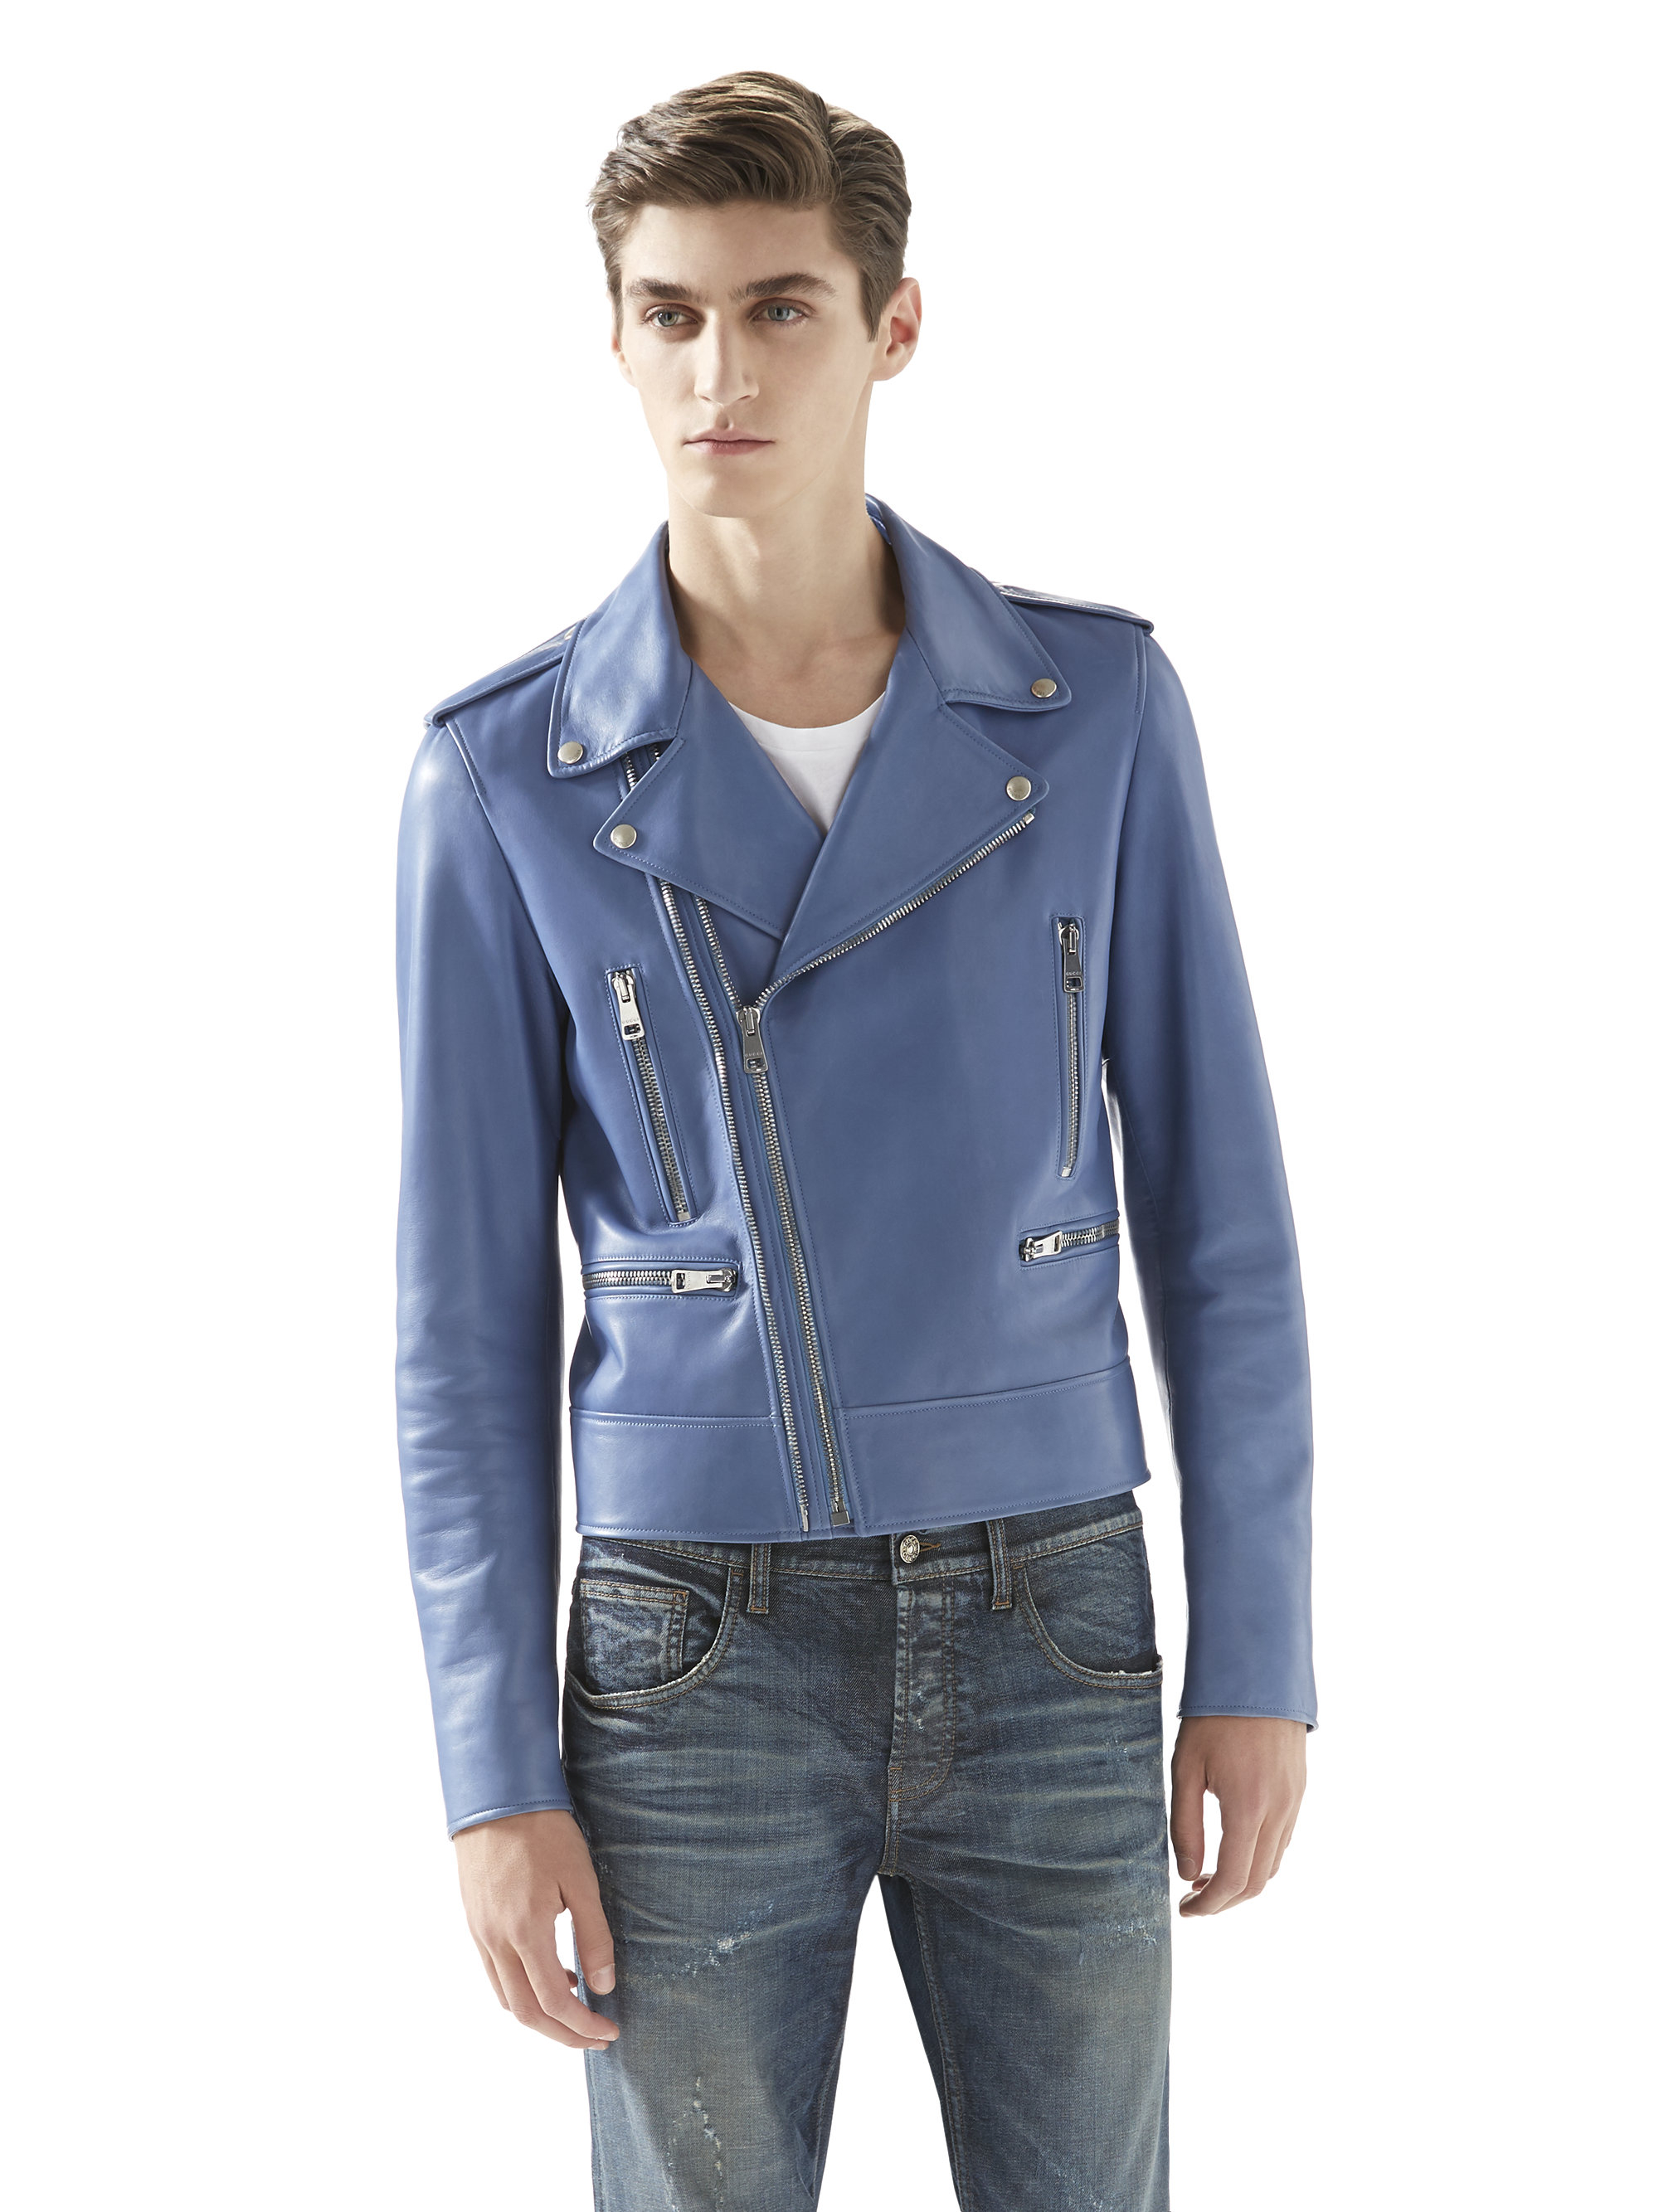 gucci mens blue leather jacket